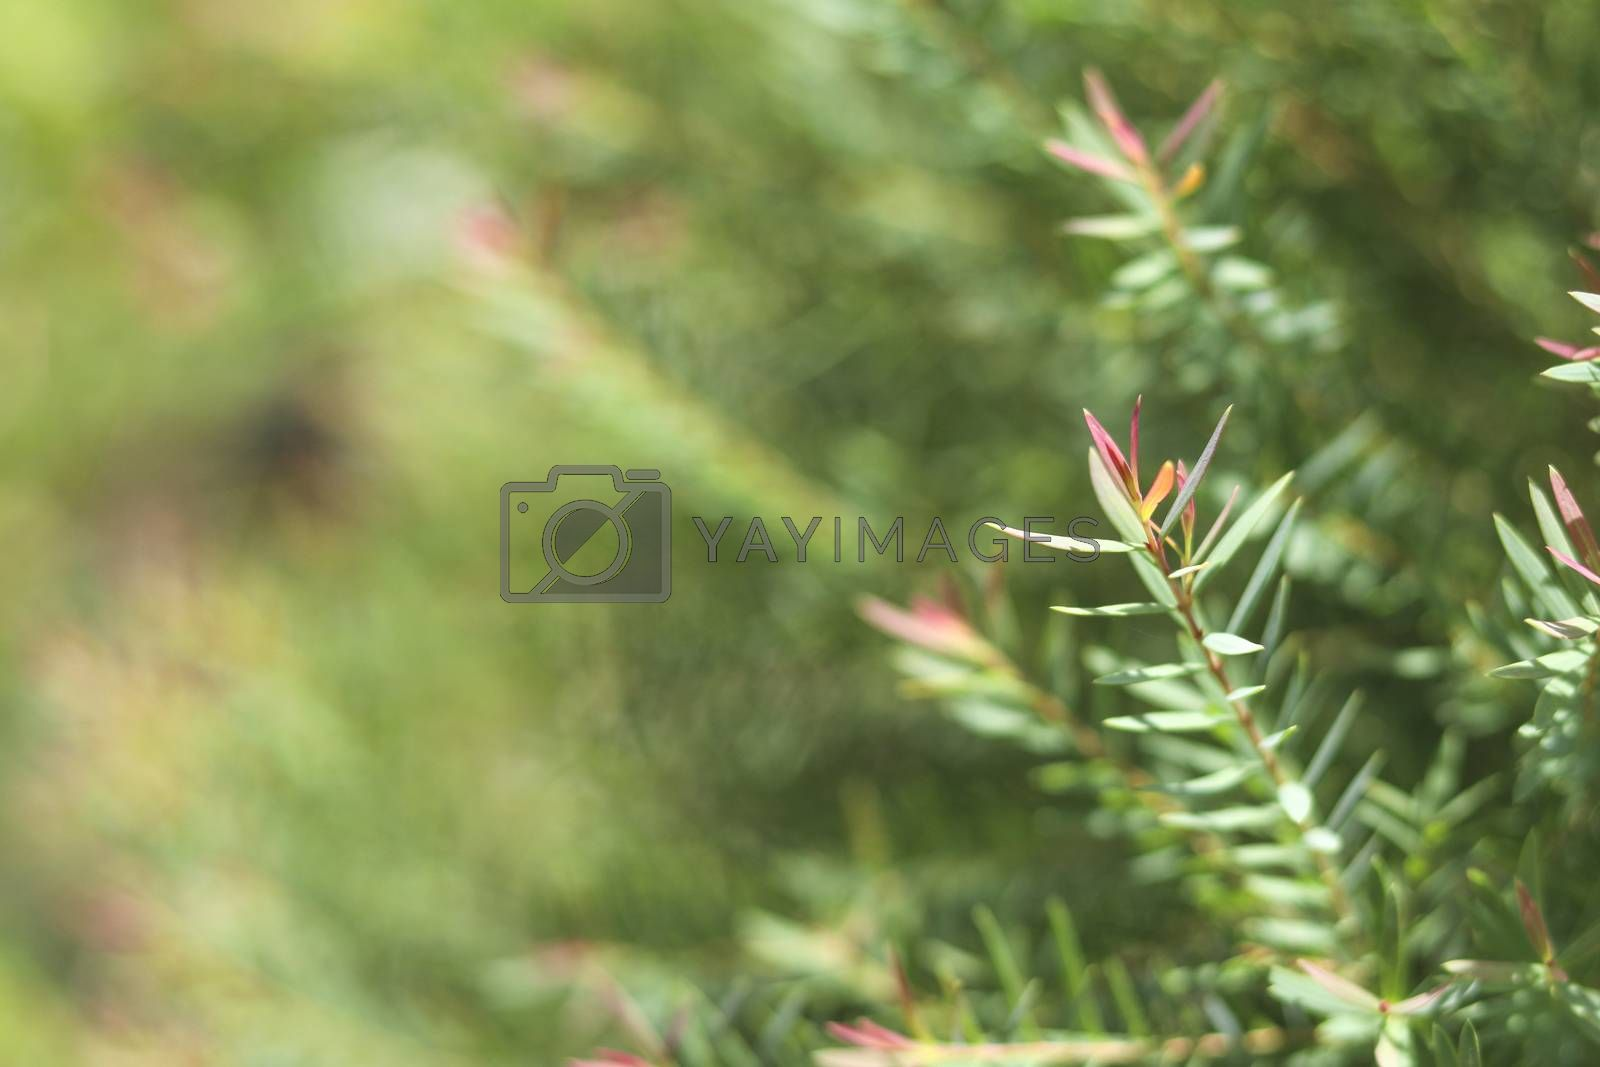 Juniperus leaves with selective focus on blurred background.